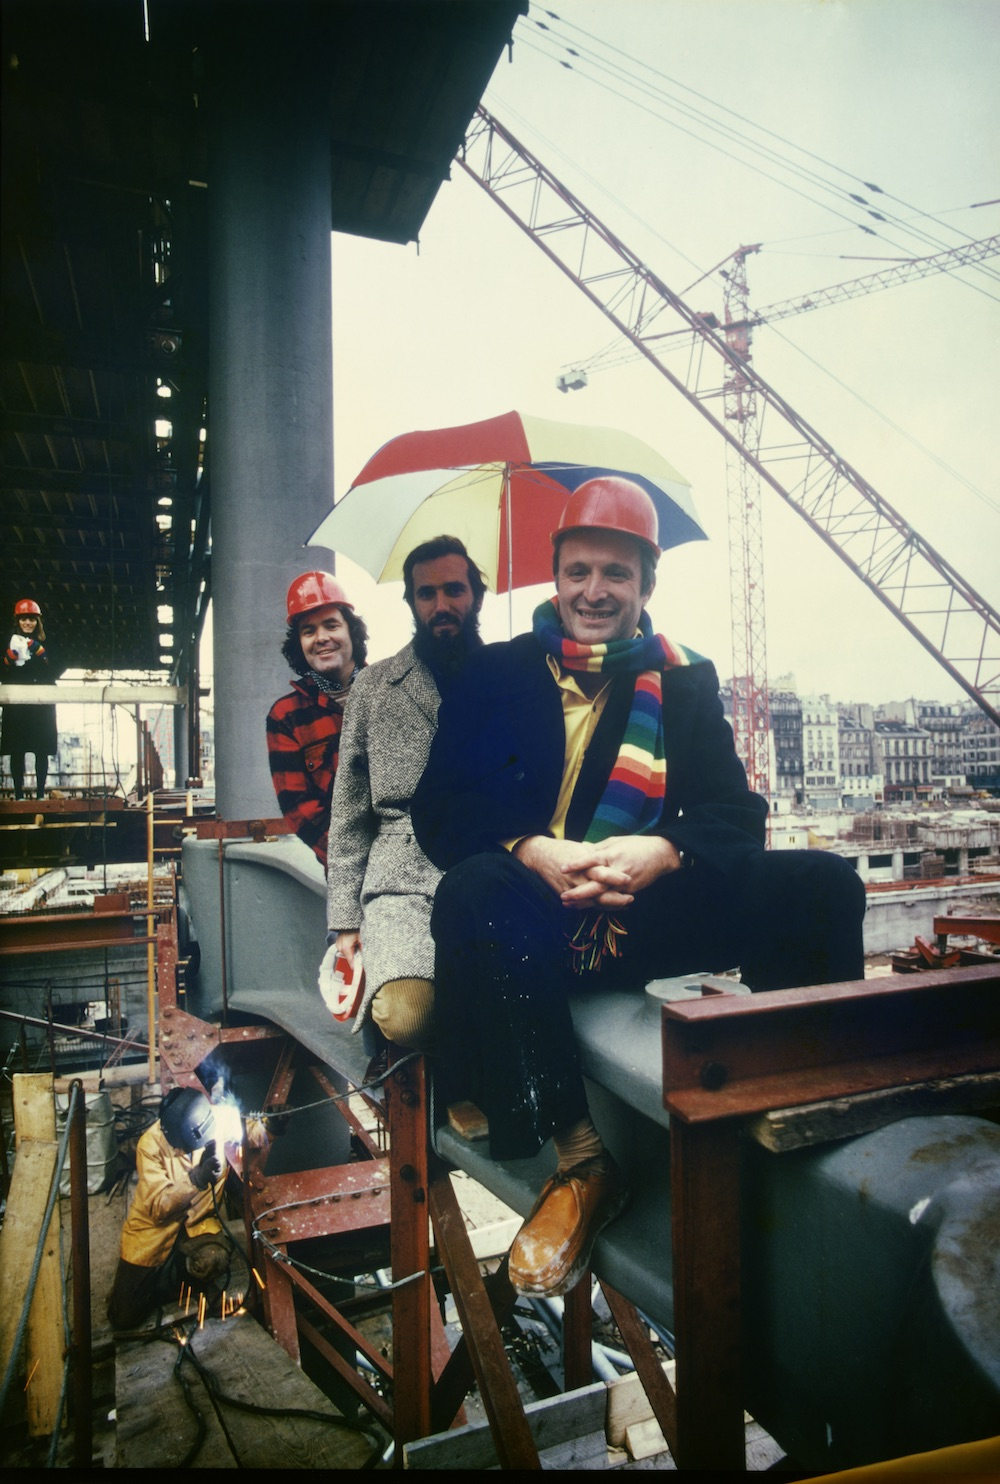 The Pompidou Centre during construction - Richard Rogers, Renzo Piano and Peter Rice, with Ruth Rogers in background. (Tony Evans/Courtesy ARUP)